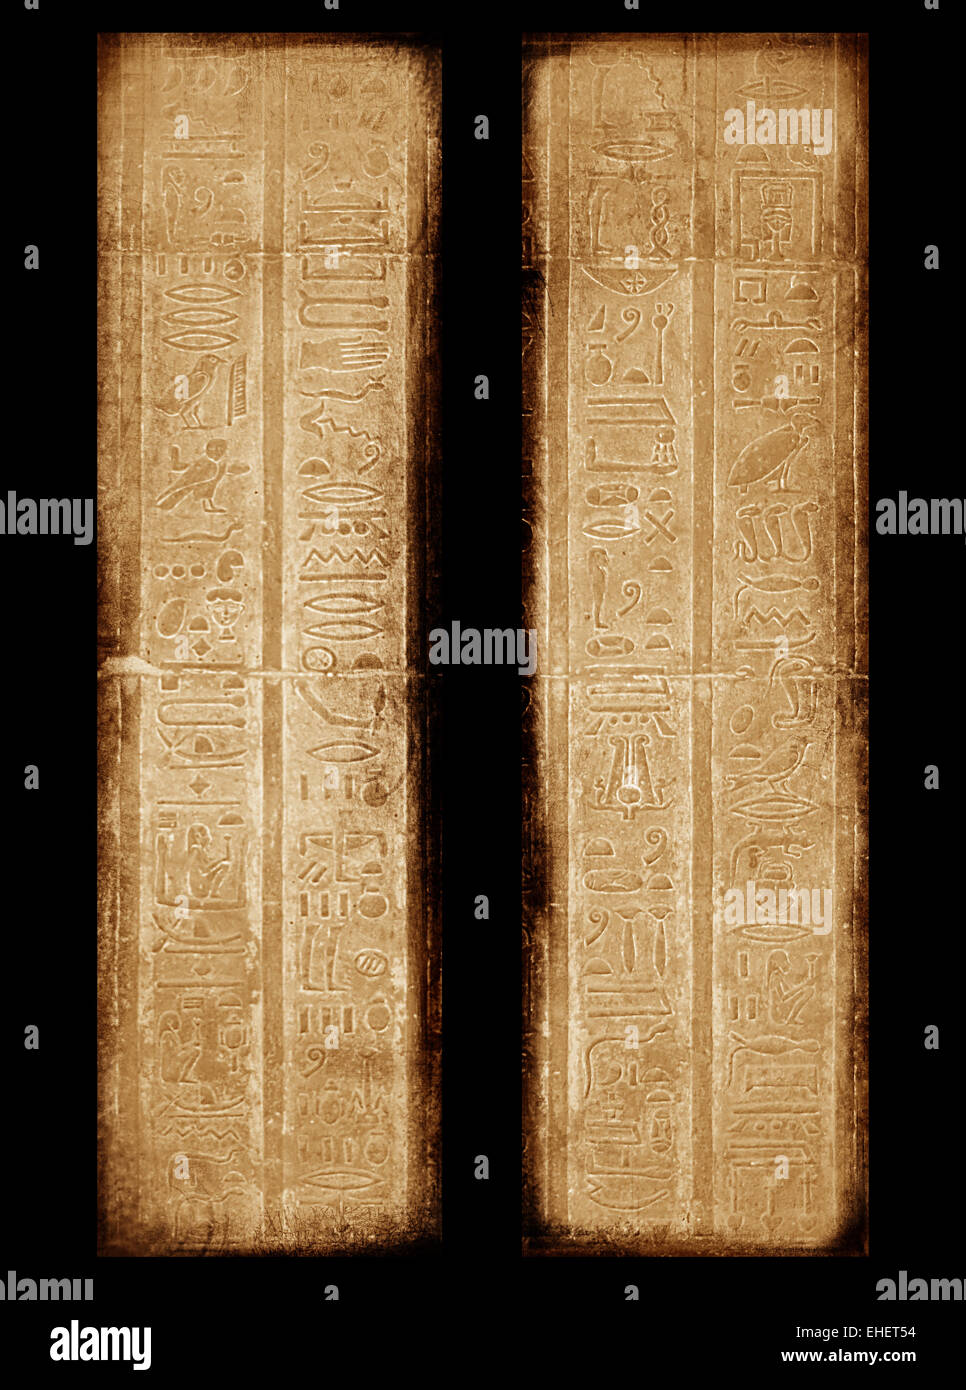 Egyptian sings on the wall - Stock Image